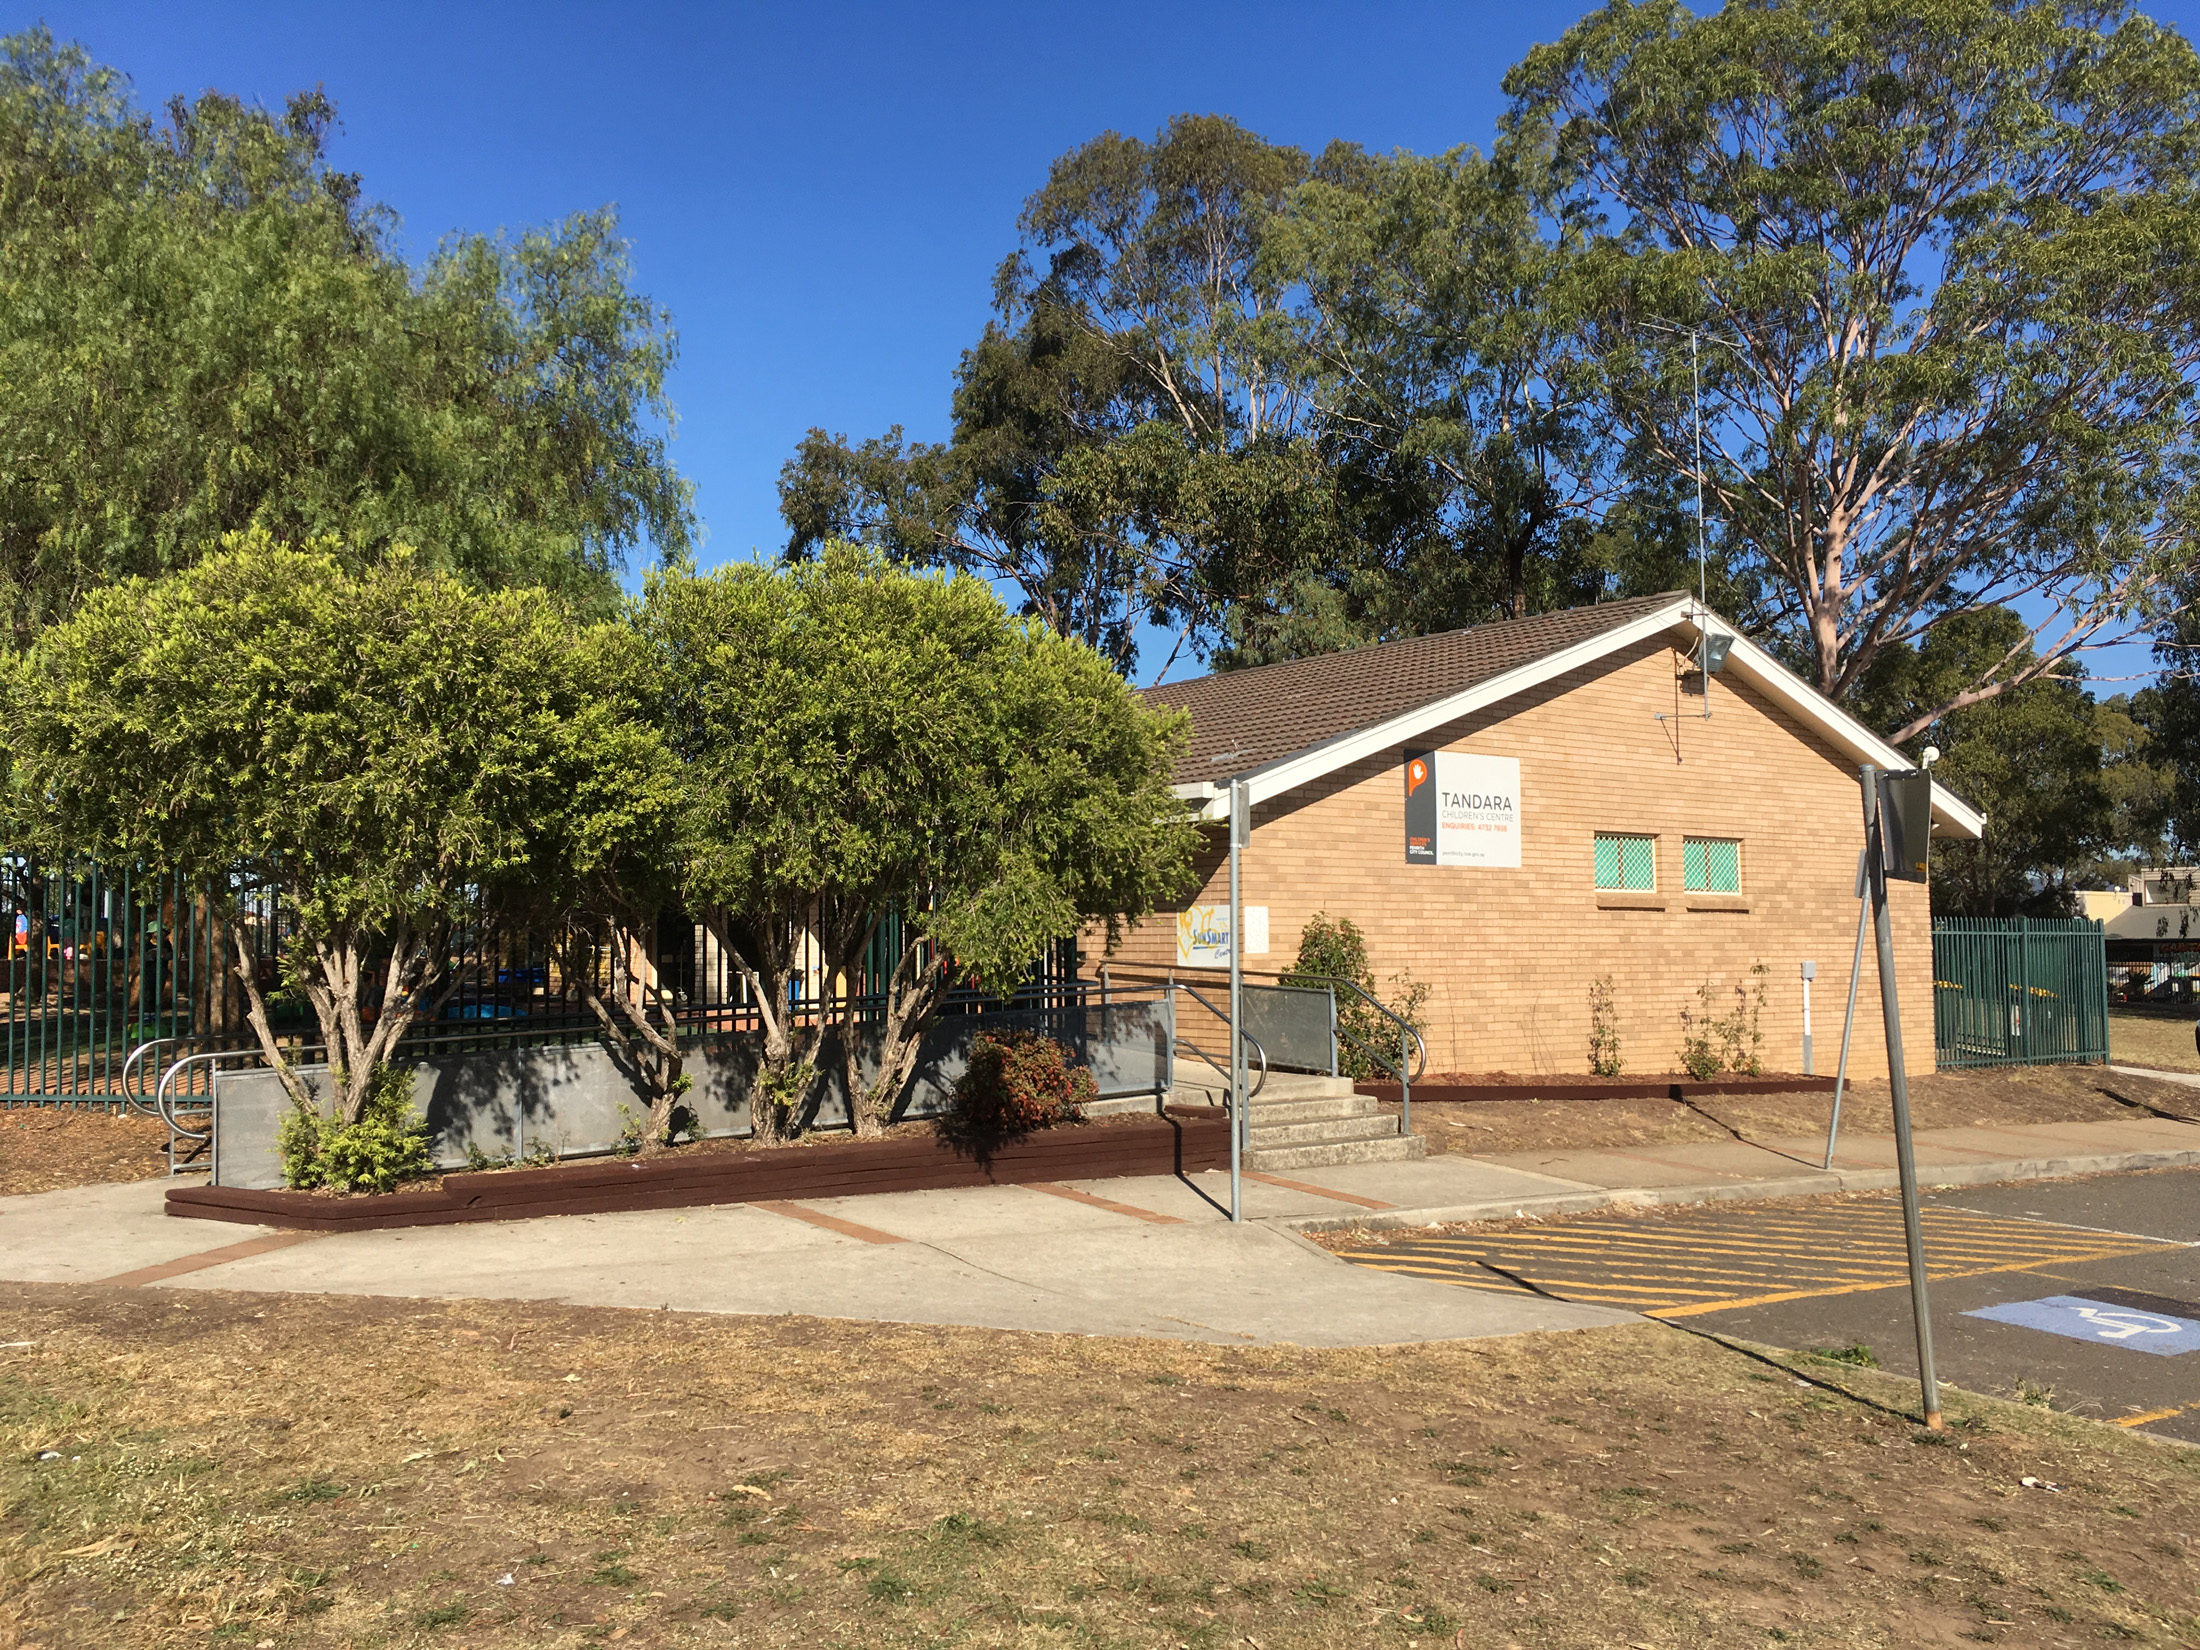 Wattle Glen and Tandara Childcare Centres